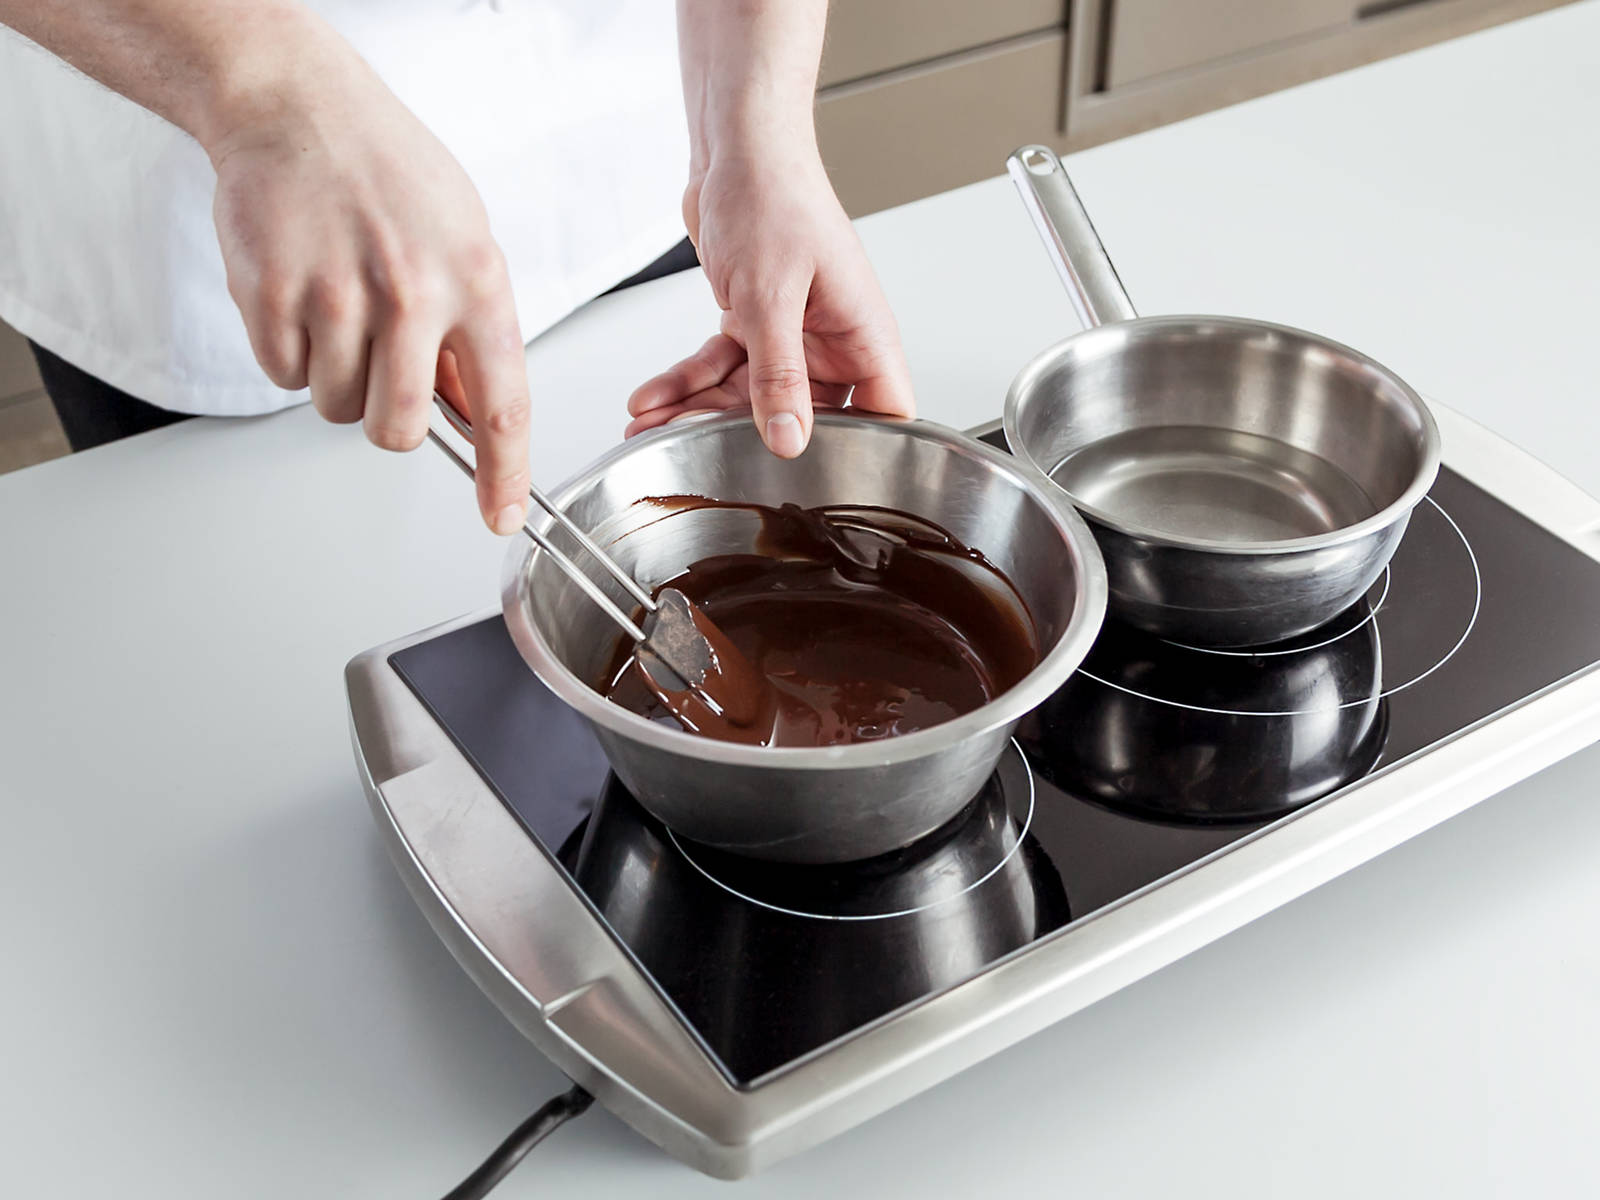 Chop dark chocolate. In a heatproof bowl, melt some of the chocolate over a saucepan filled with simmering water. Meanwhile, inflate and knot the balloons. Remove chocolate from heat and stir in the remaining chocolate until melted and smooth.